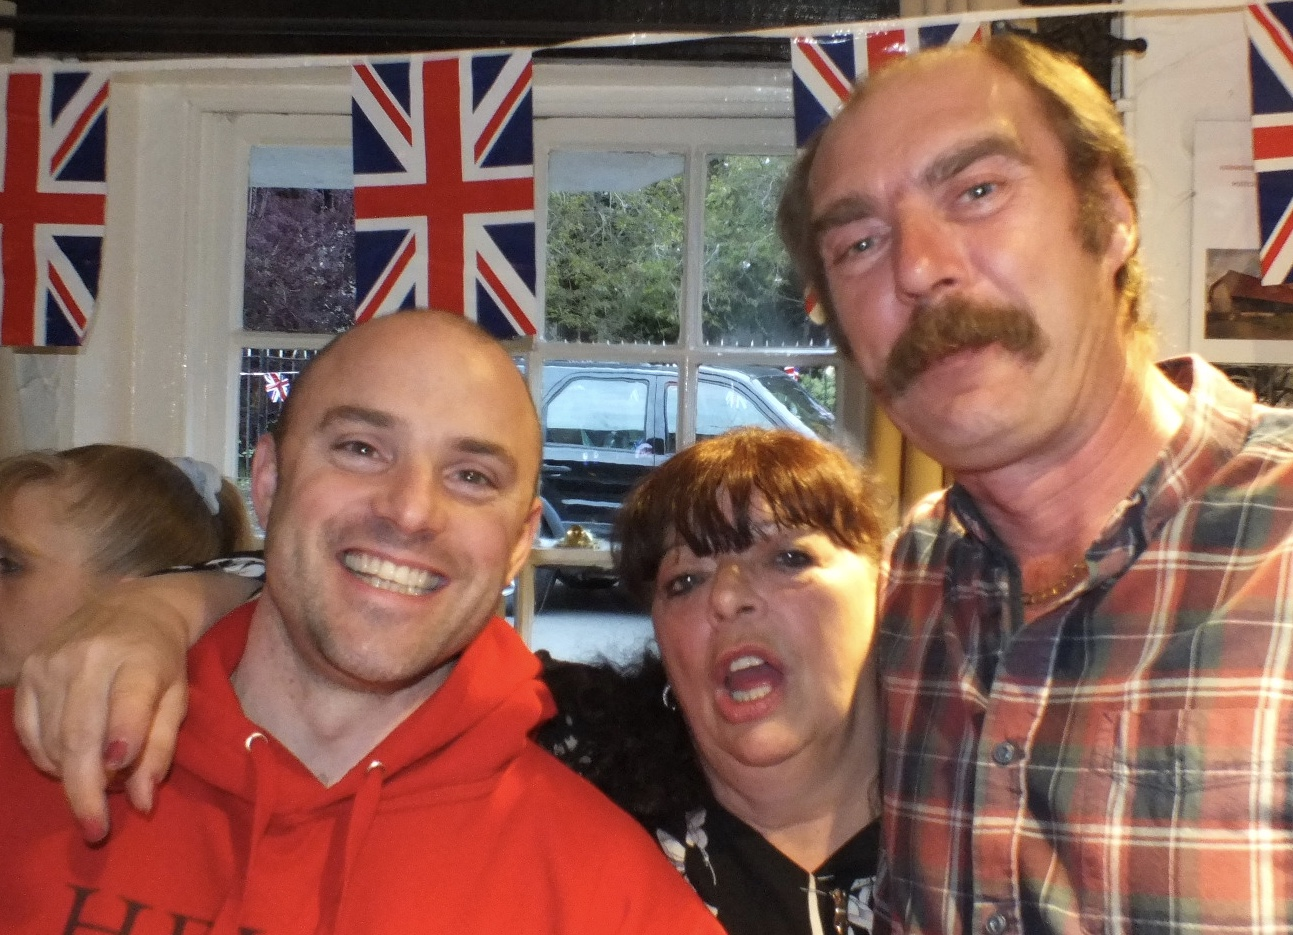 Danny, who helped with planning and technology,with Kris and Roy who run the pub and give SHE enormous much support with the campaign